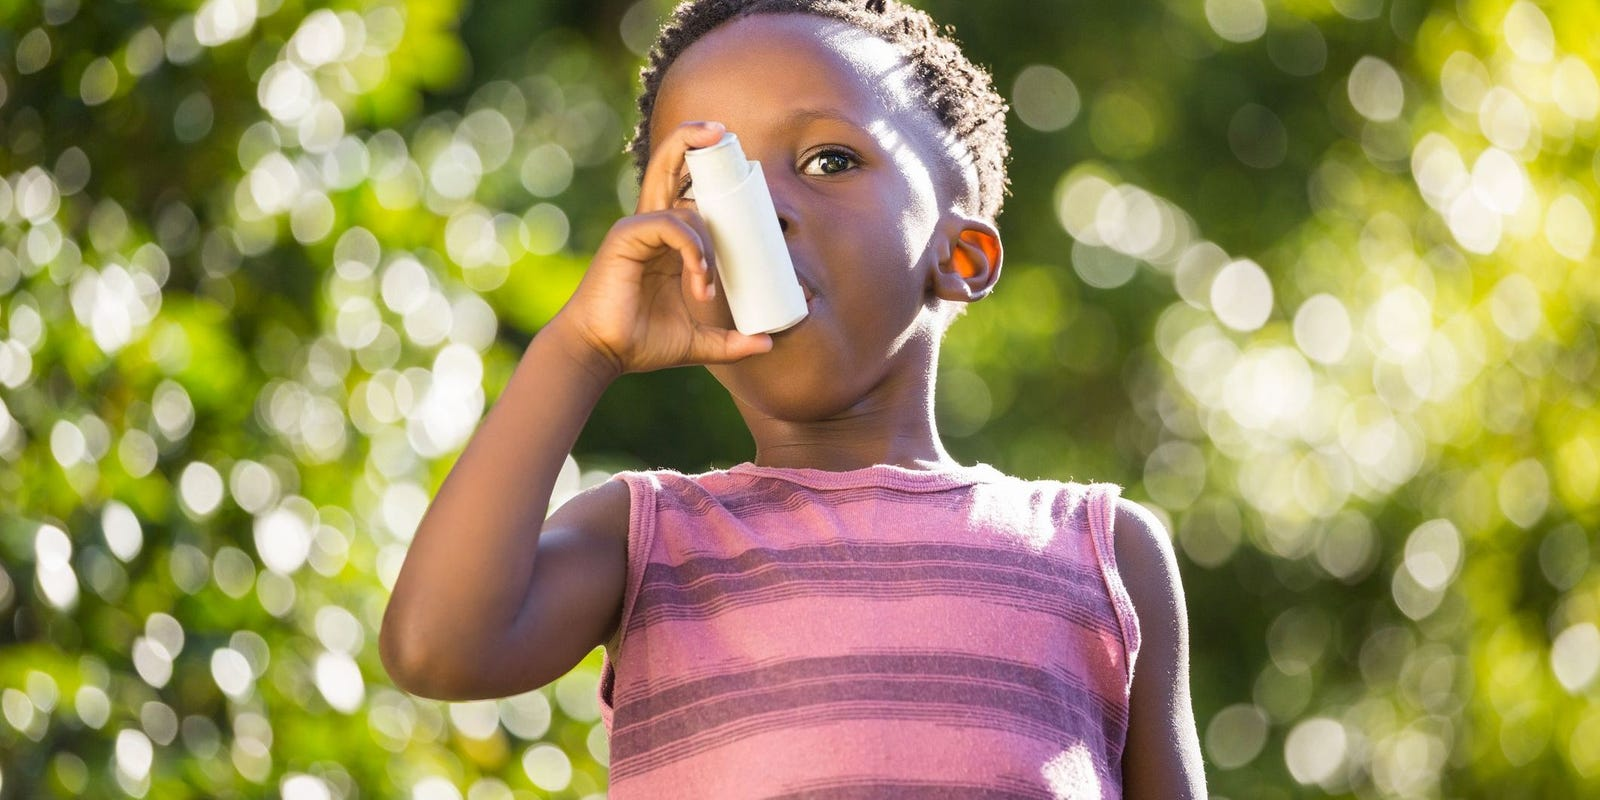 lactobacillus probiotics improve asthma severity in children according to new study